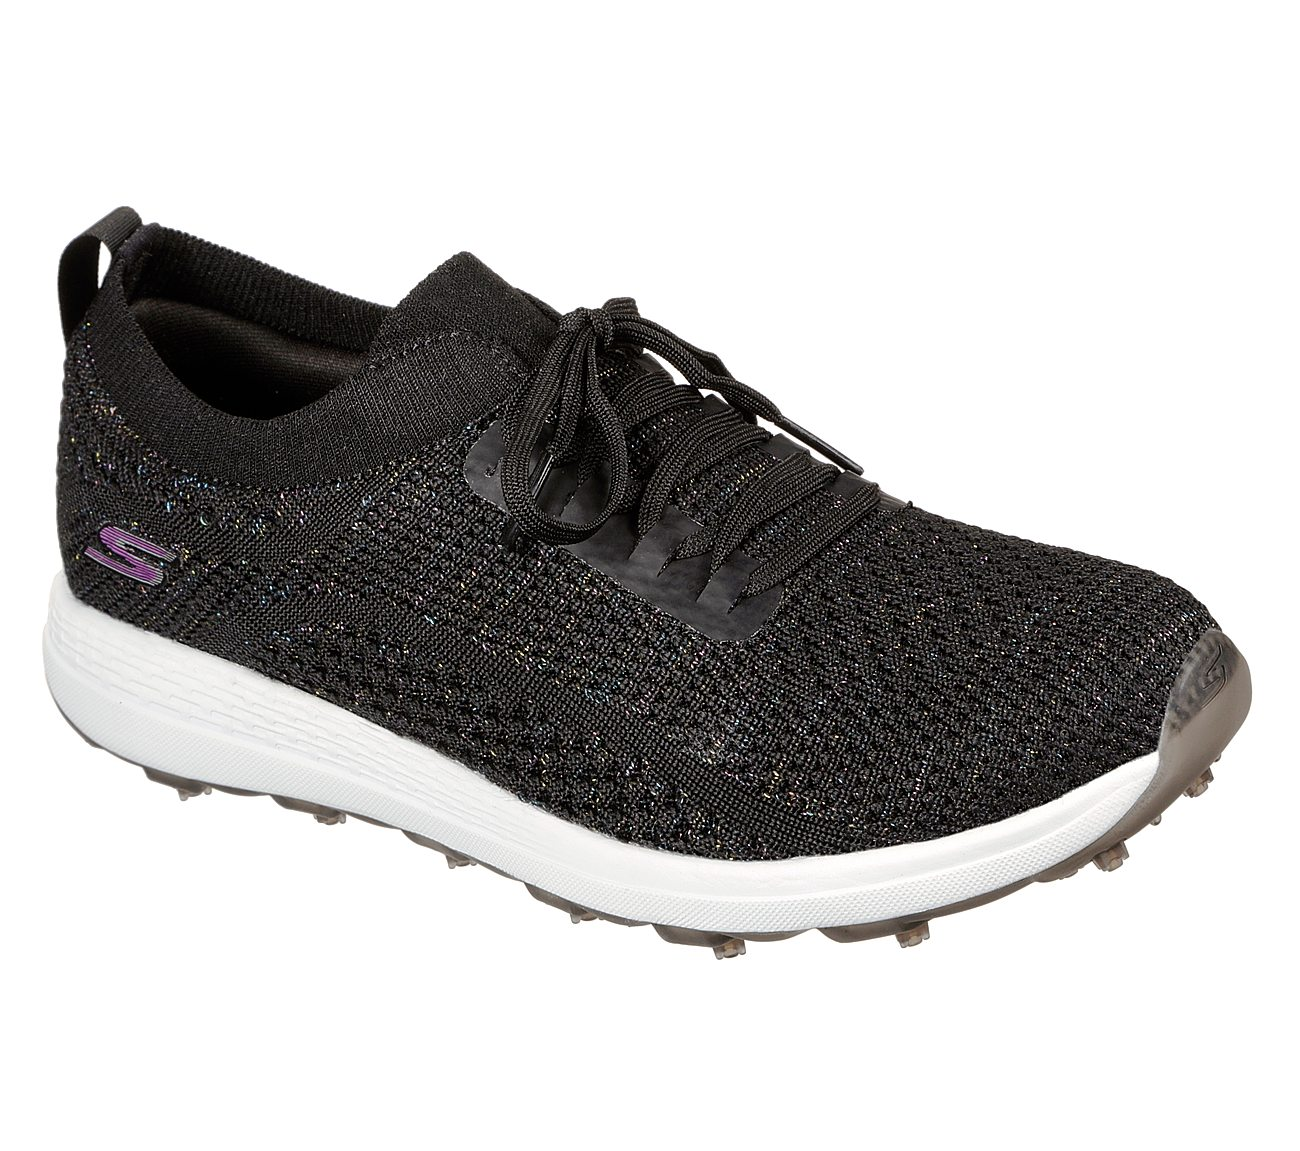 Skechers Women's Go Golf Max Glitter Black Golf Shoe